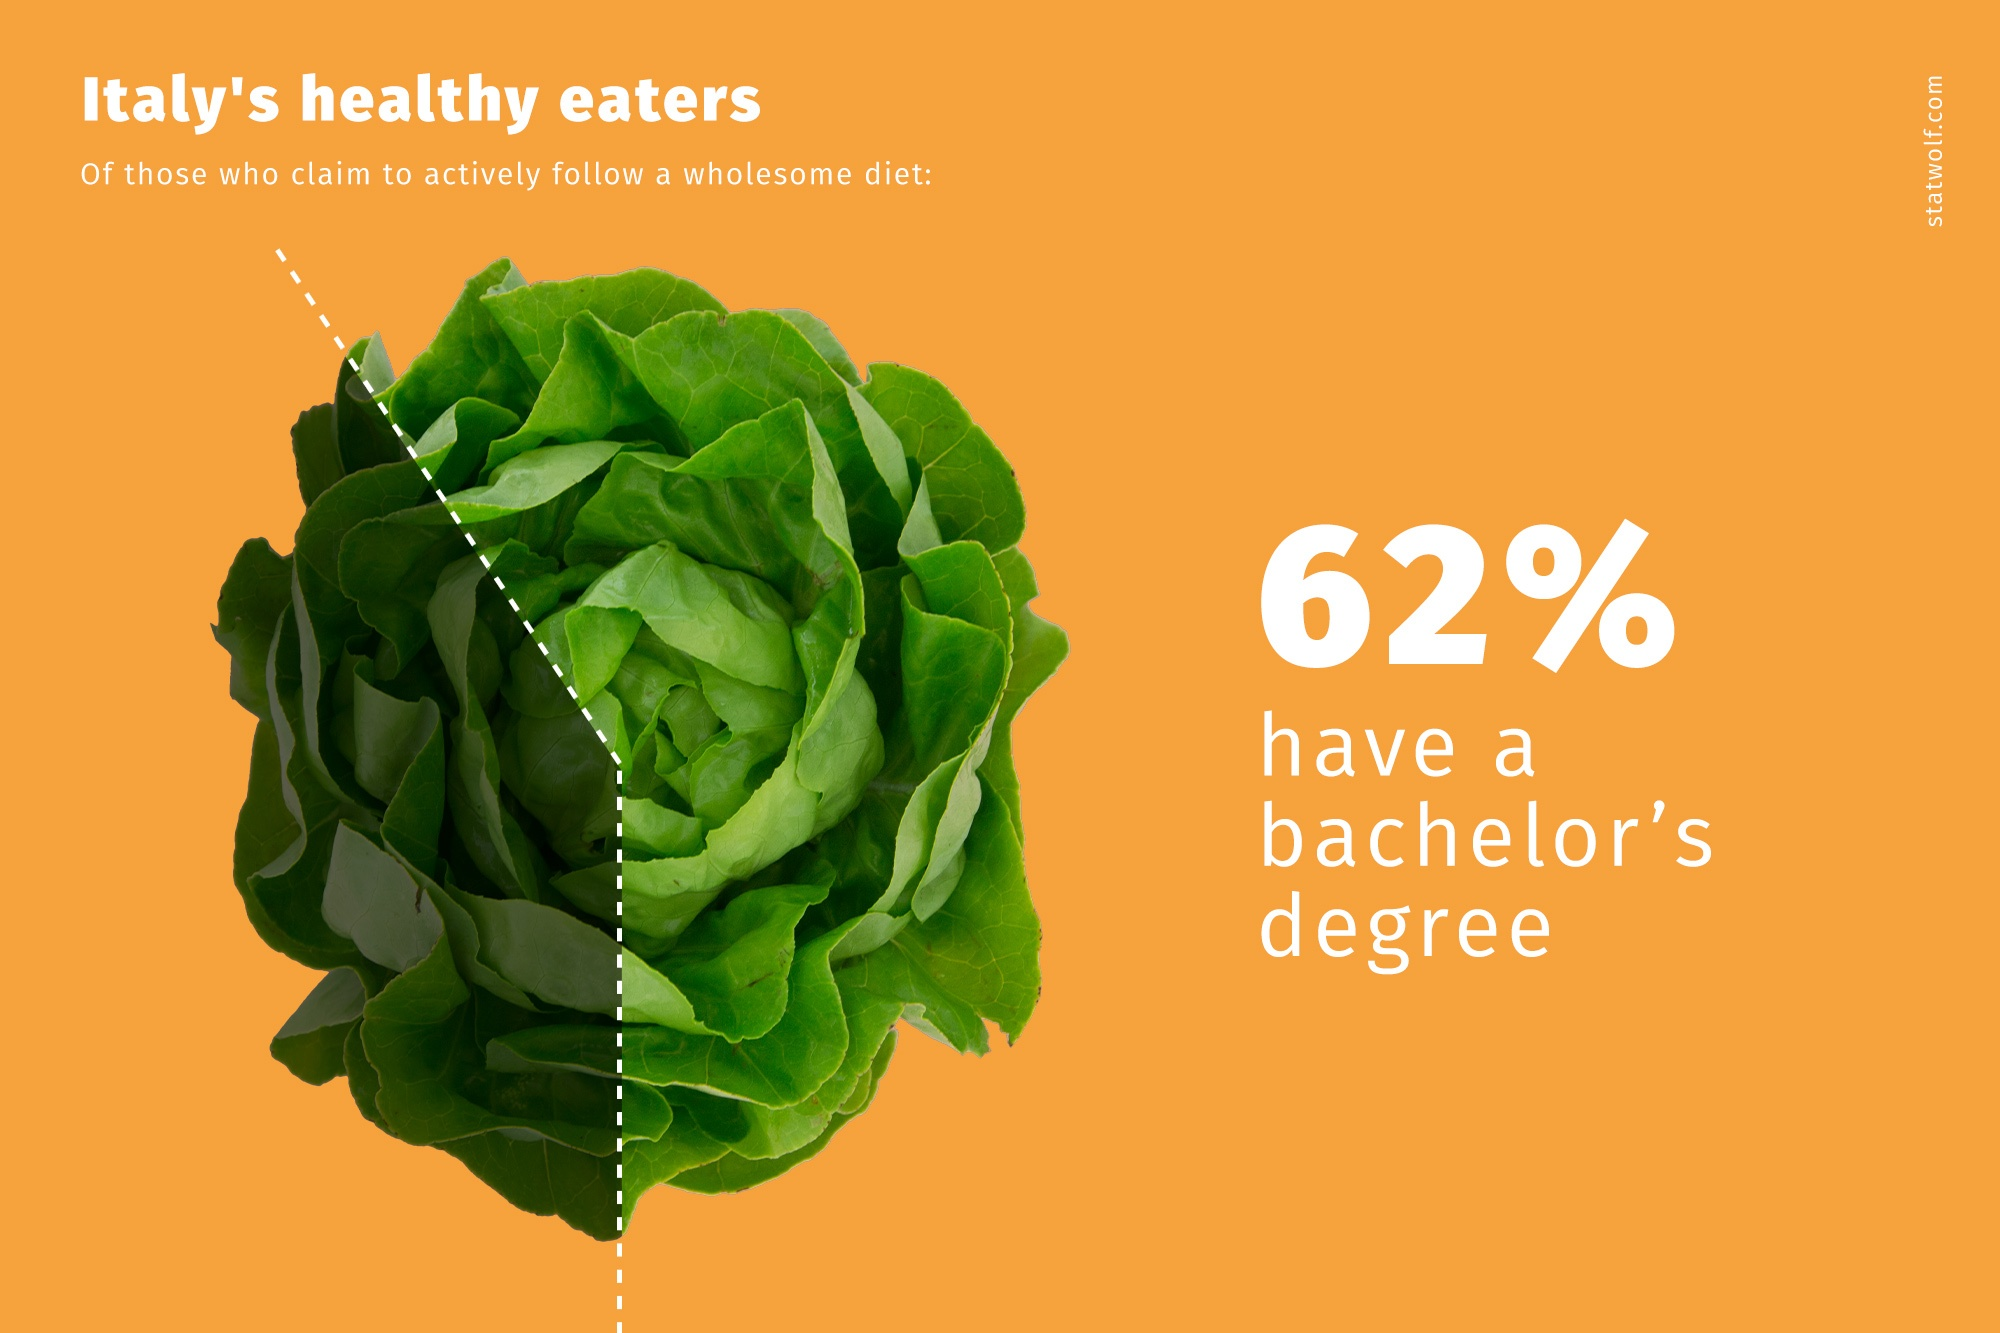 Italy's Healthy Eaters